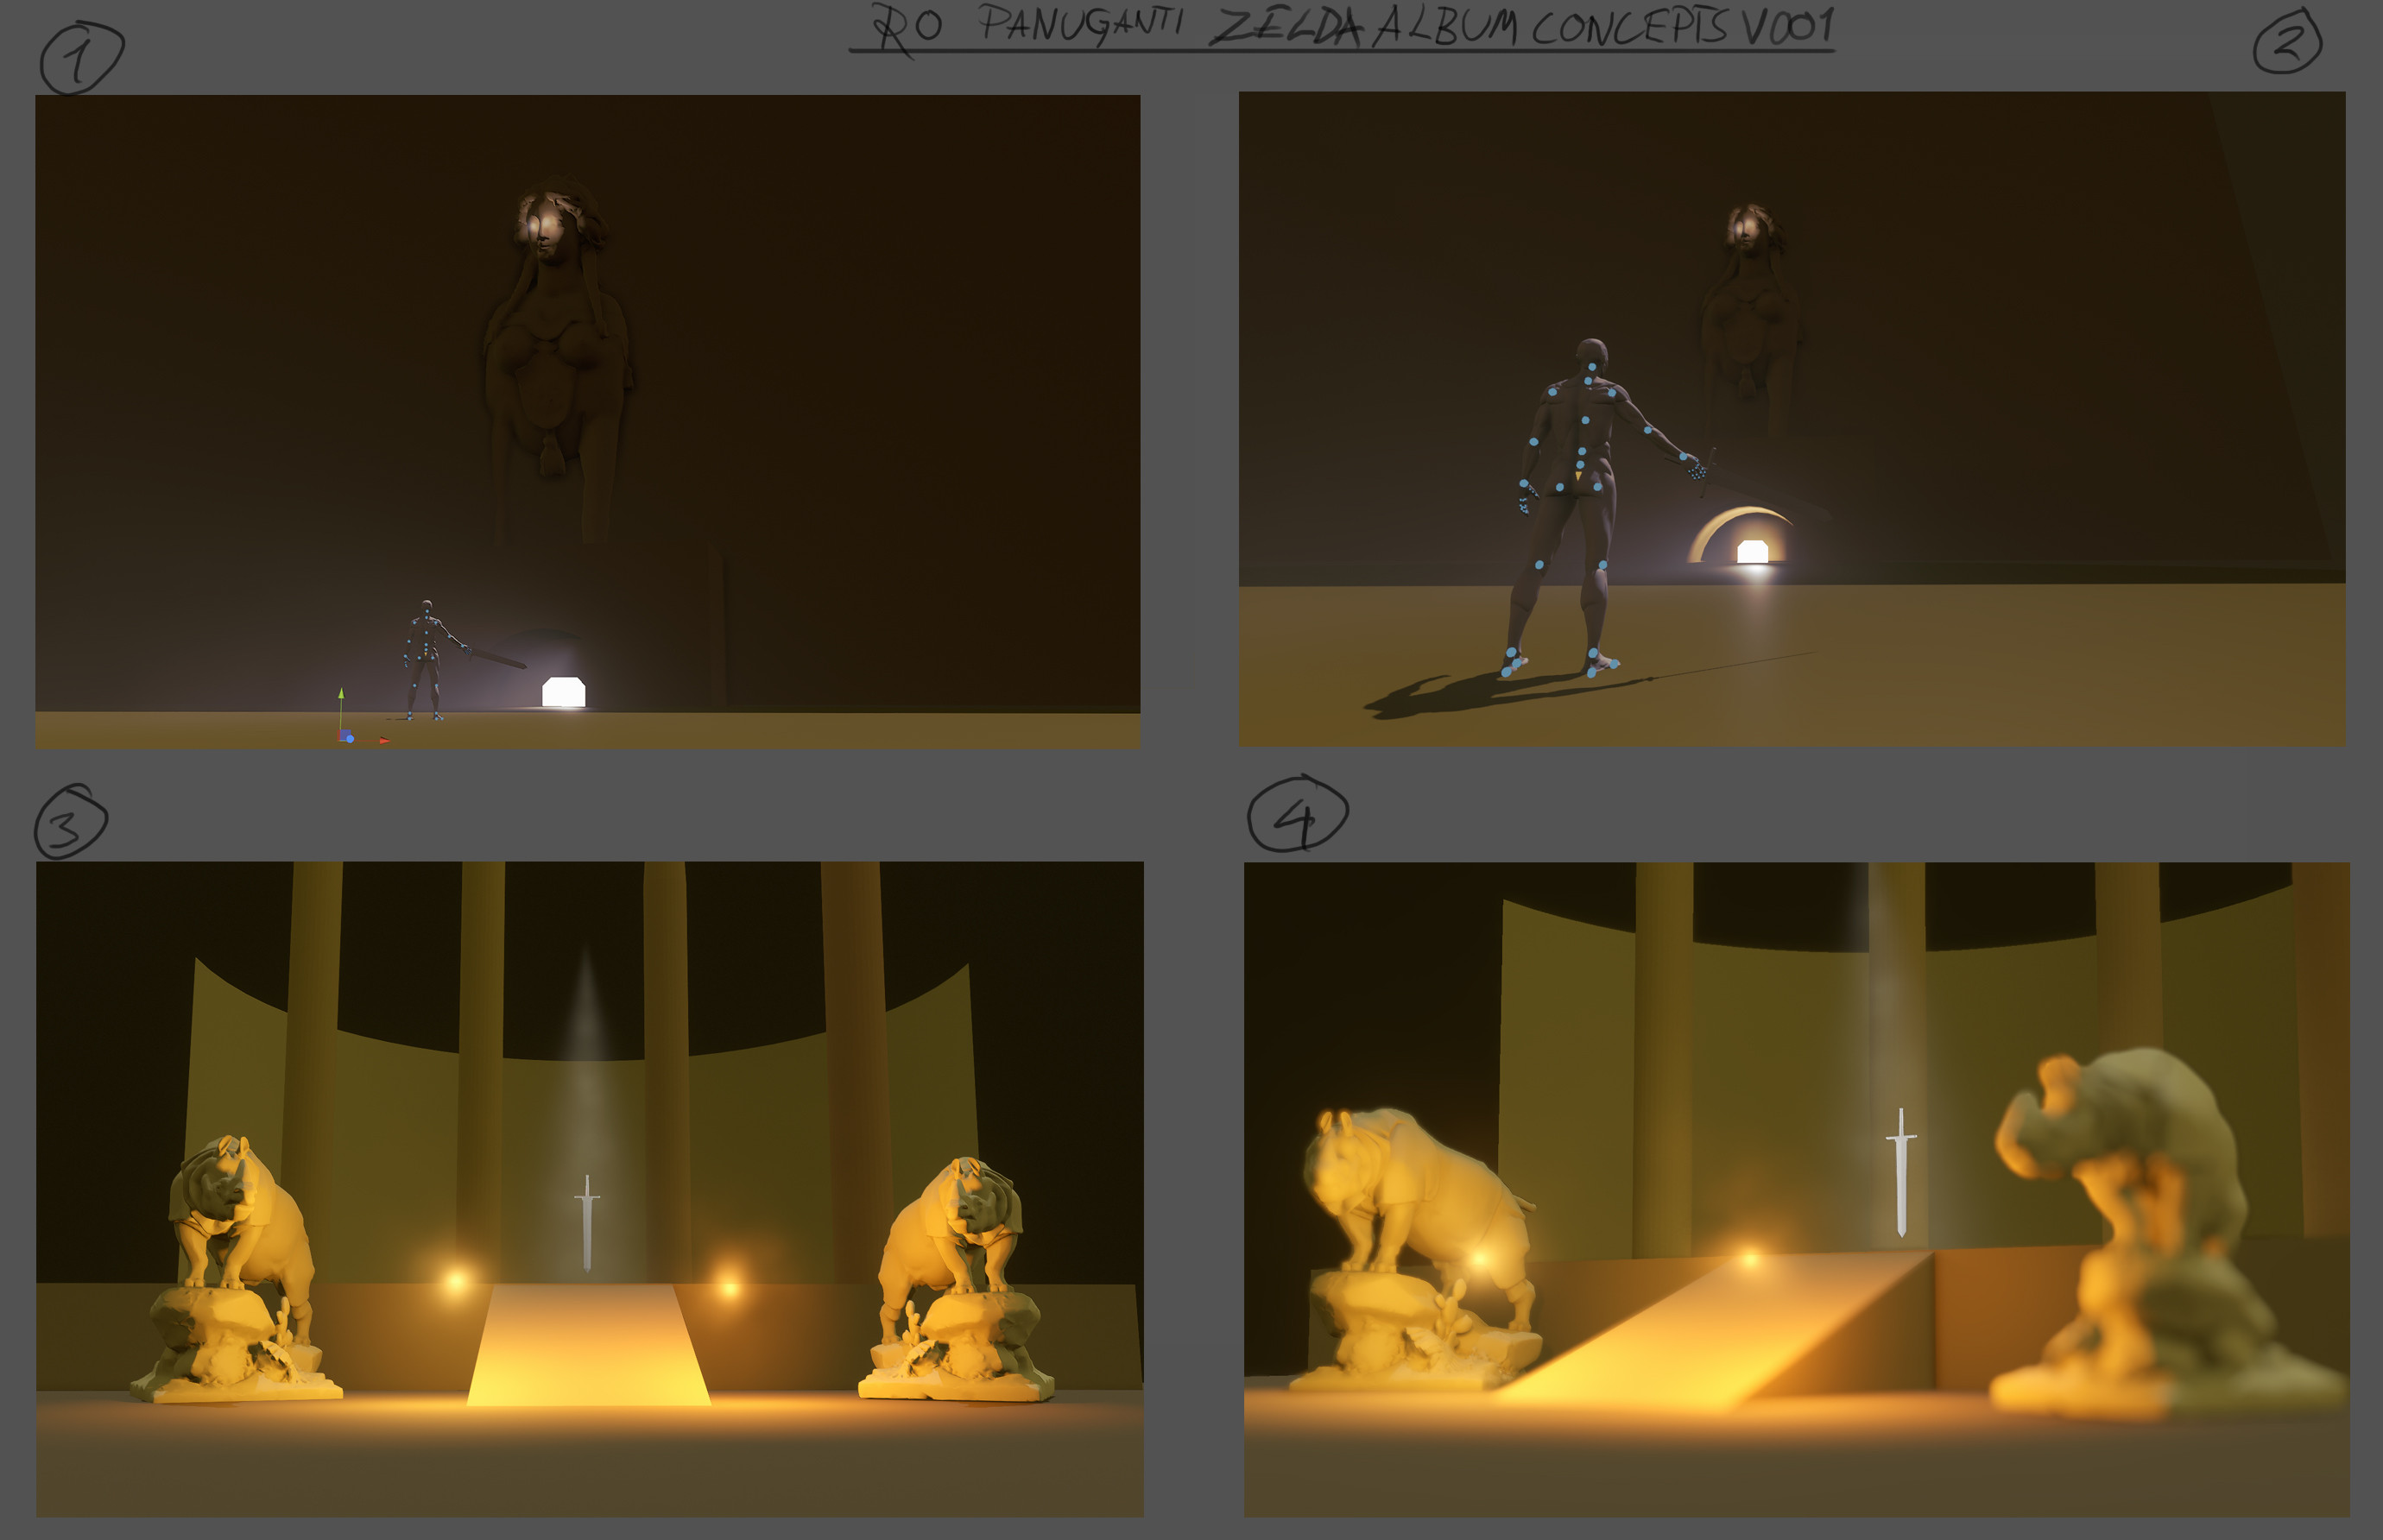 The 3D Thumbnails made in Portrait studio. We liked both no. 1 the most.